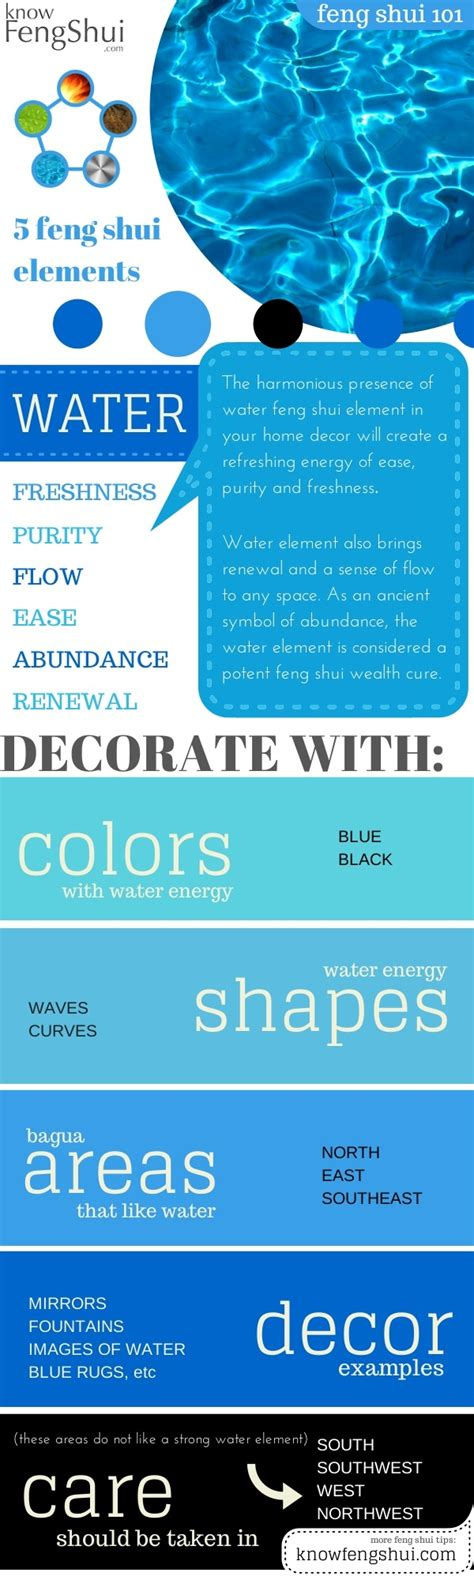 Home Decor Infographic the power of water feng shui element feng shui tips